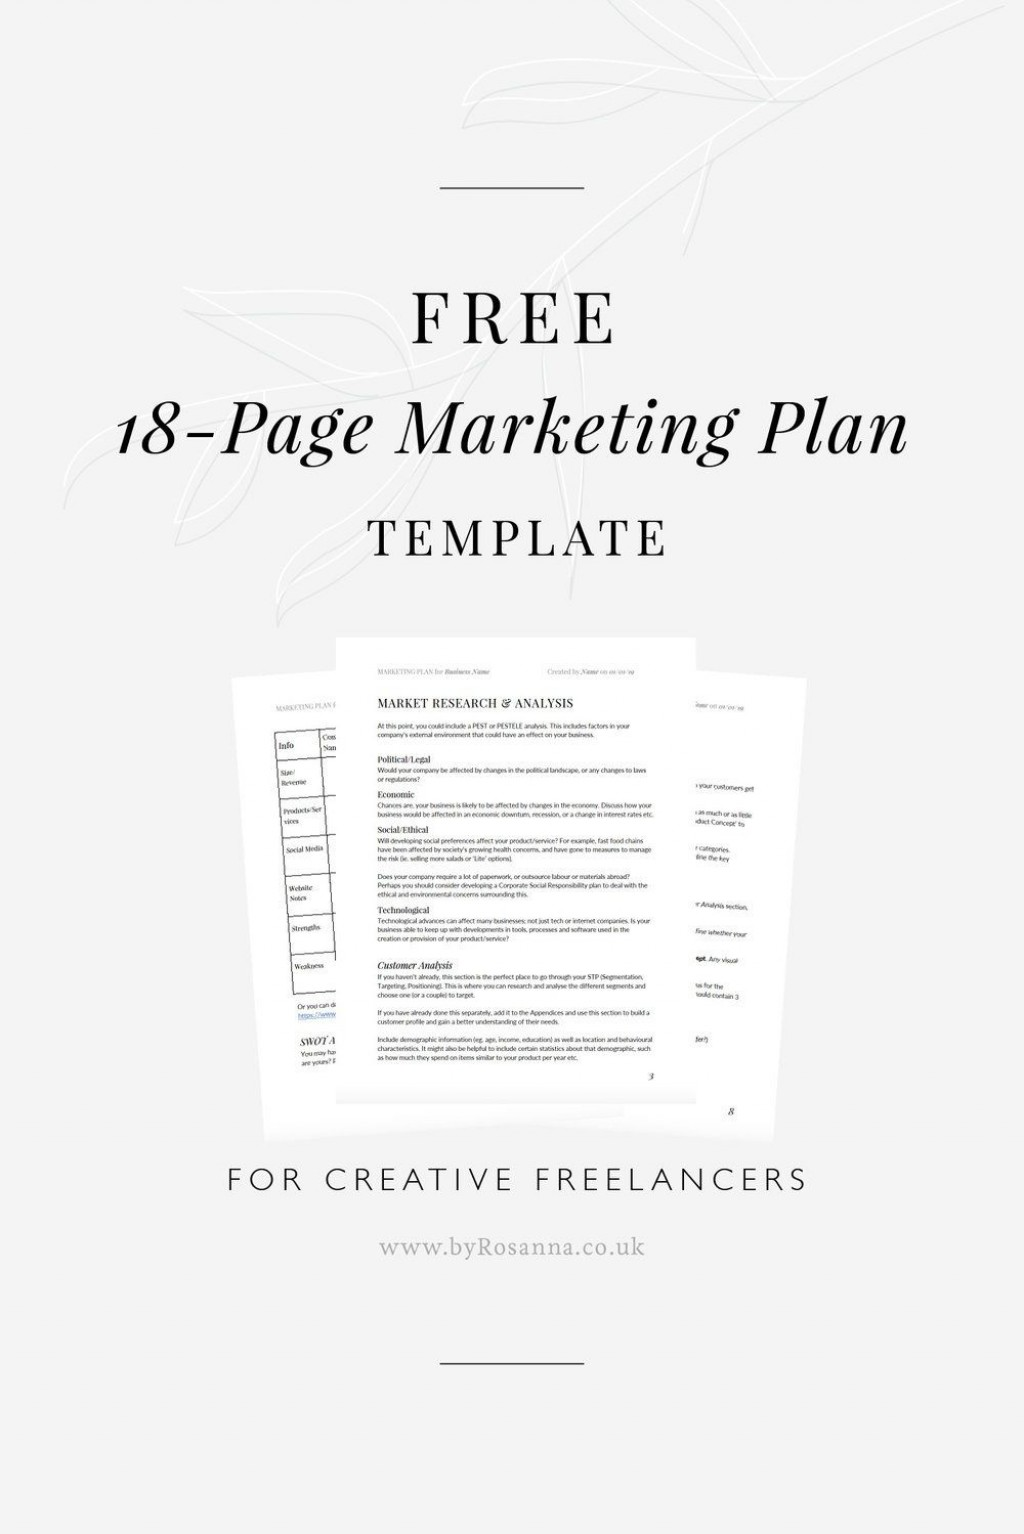 006 Fearsome Marketing Plan Format For Small Busines Image  Business Template FreeLarge